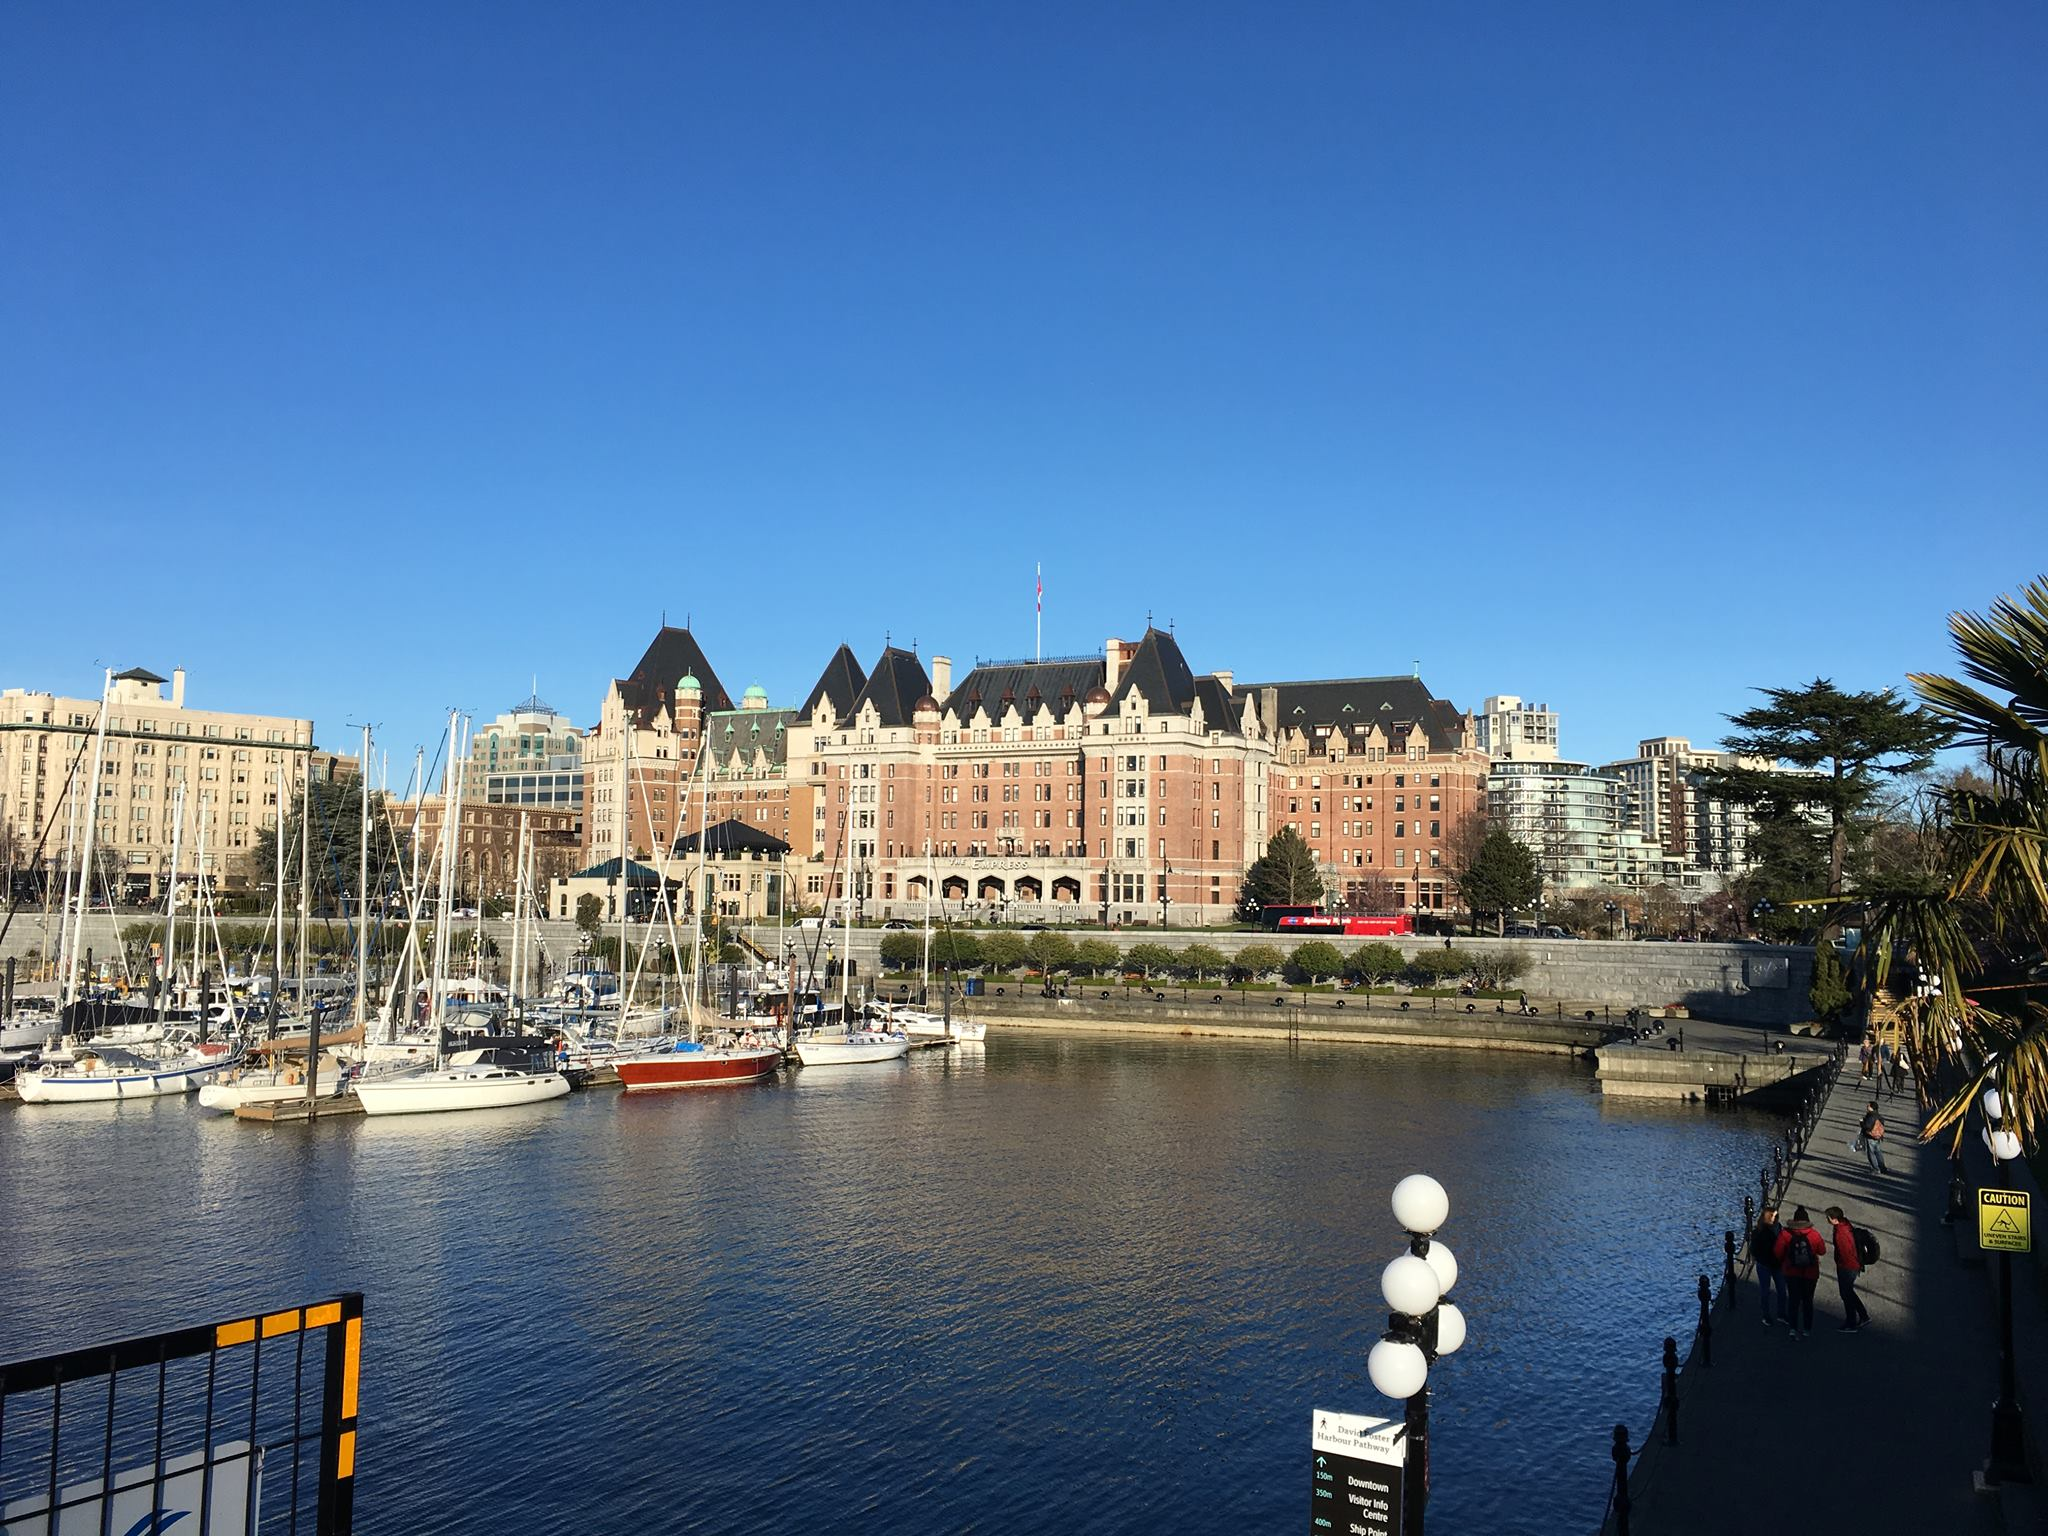 The view of the Fairmont Empress Hotel